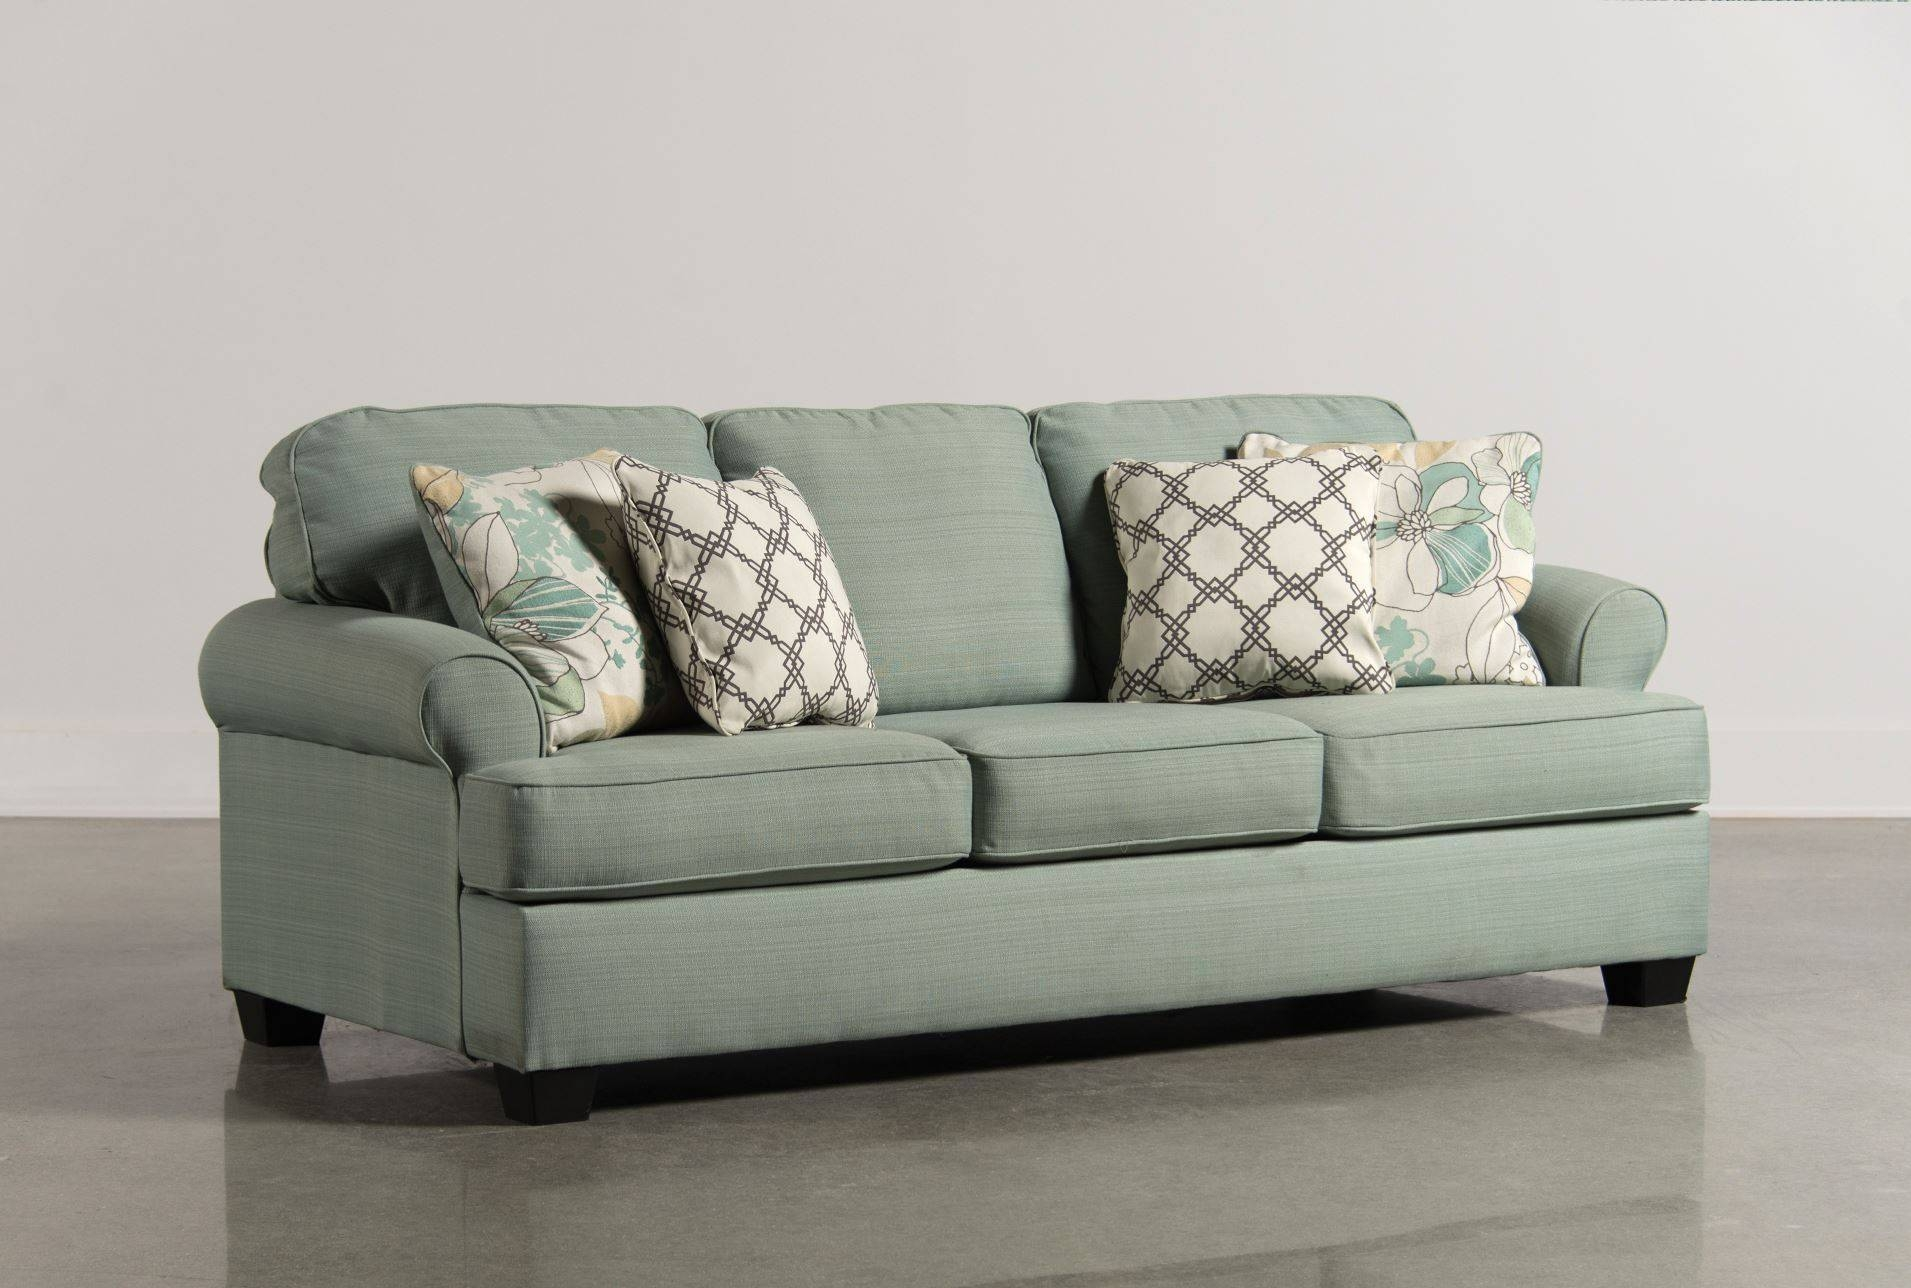 Sofa Sleeper Sale | Roselawnlutheran with regard to Seafoam Green Sofas (Image 14 of 15)